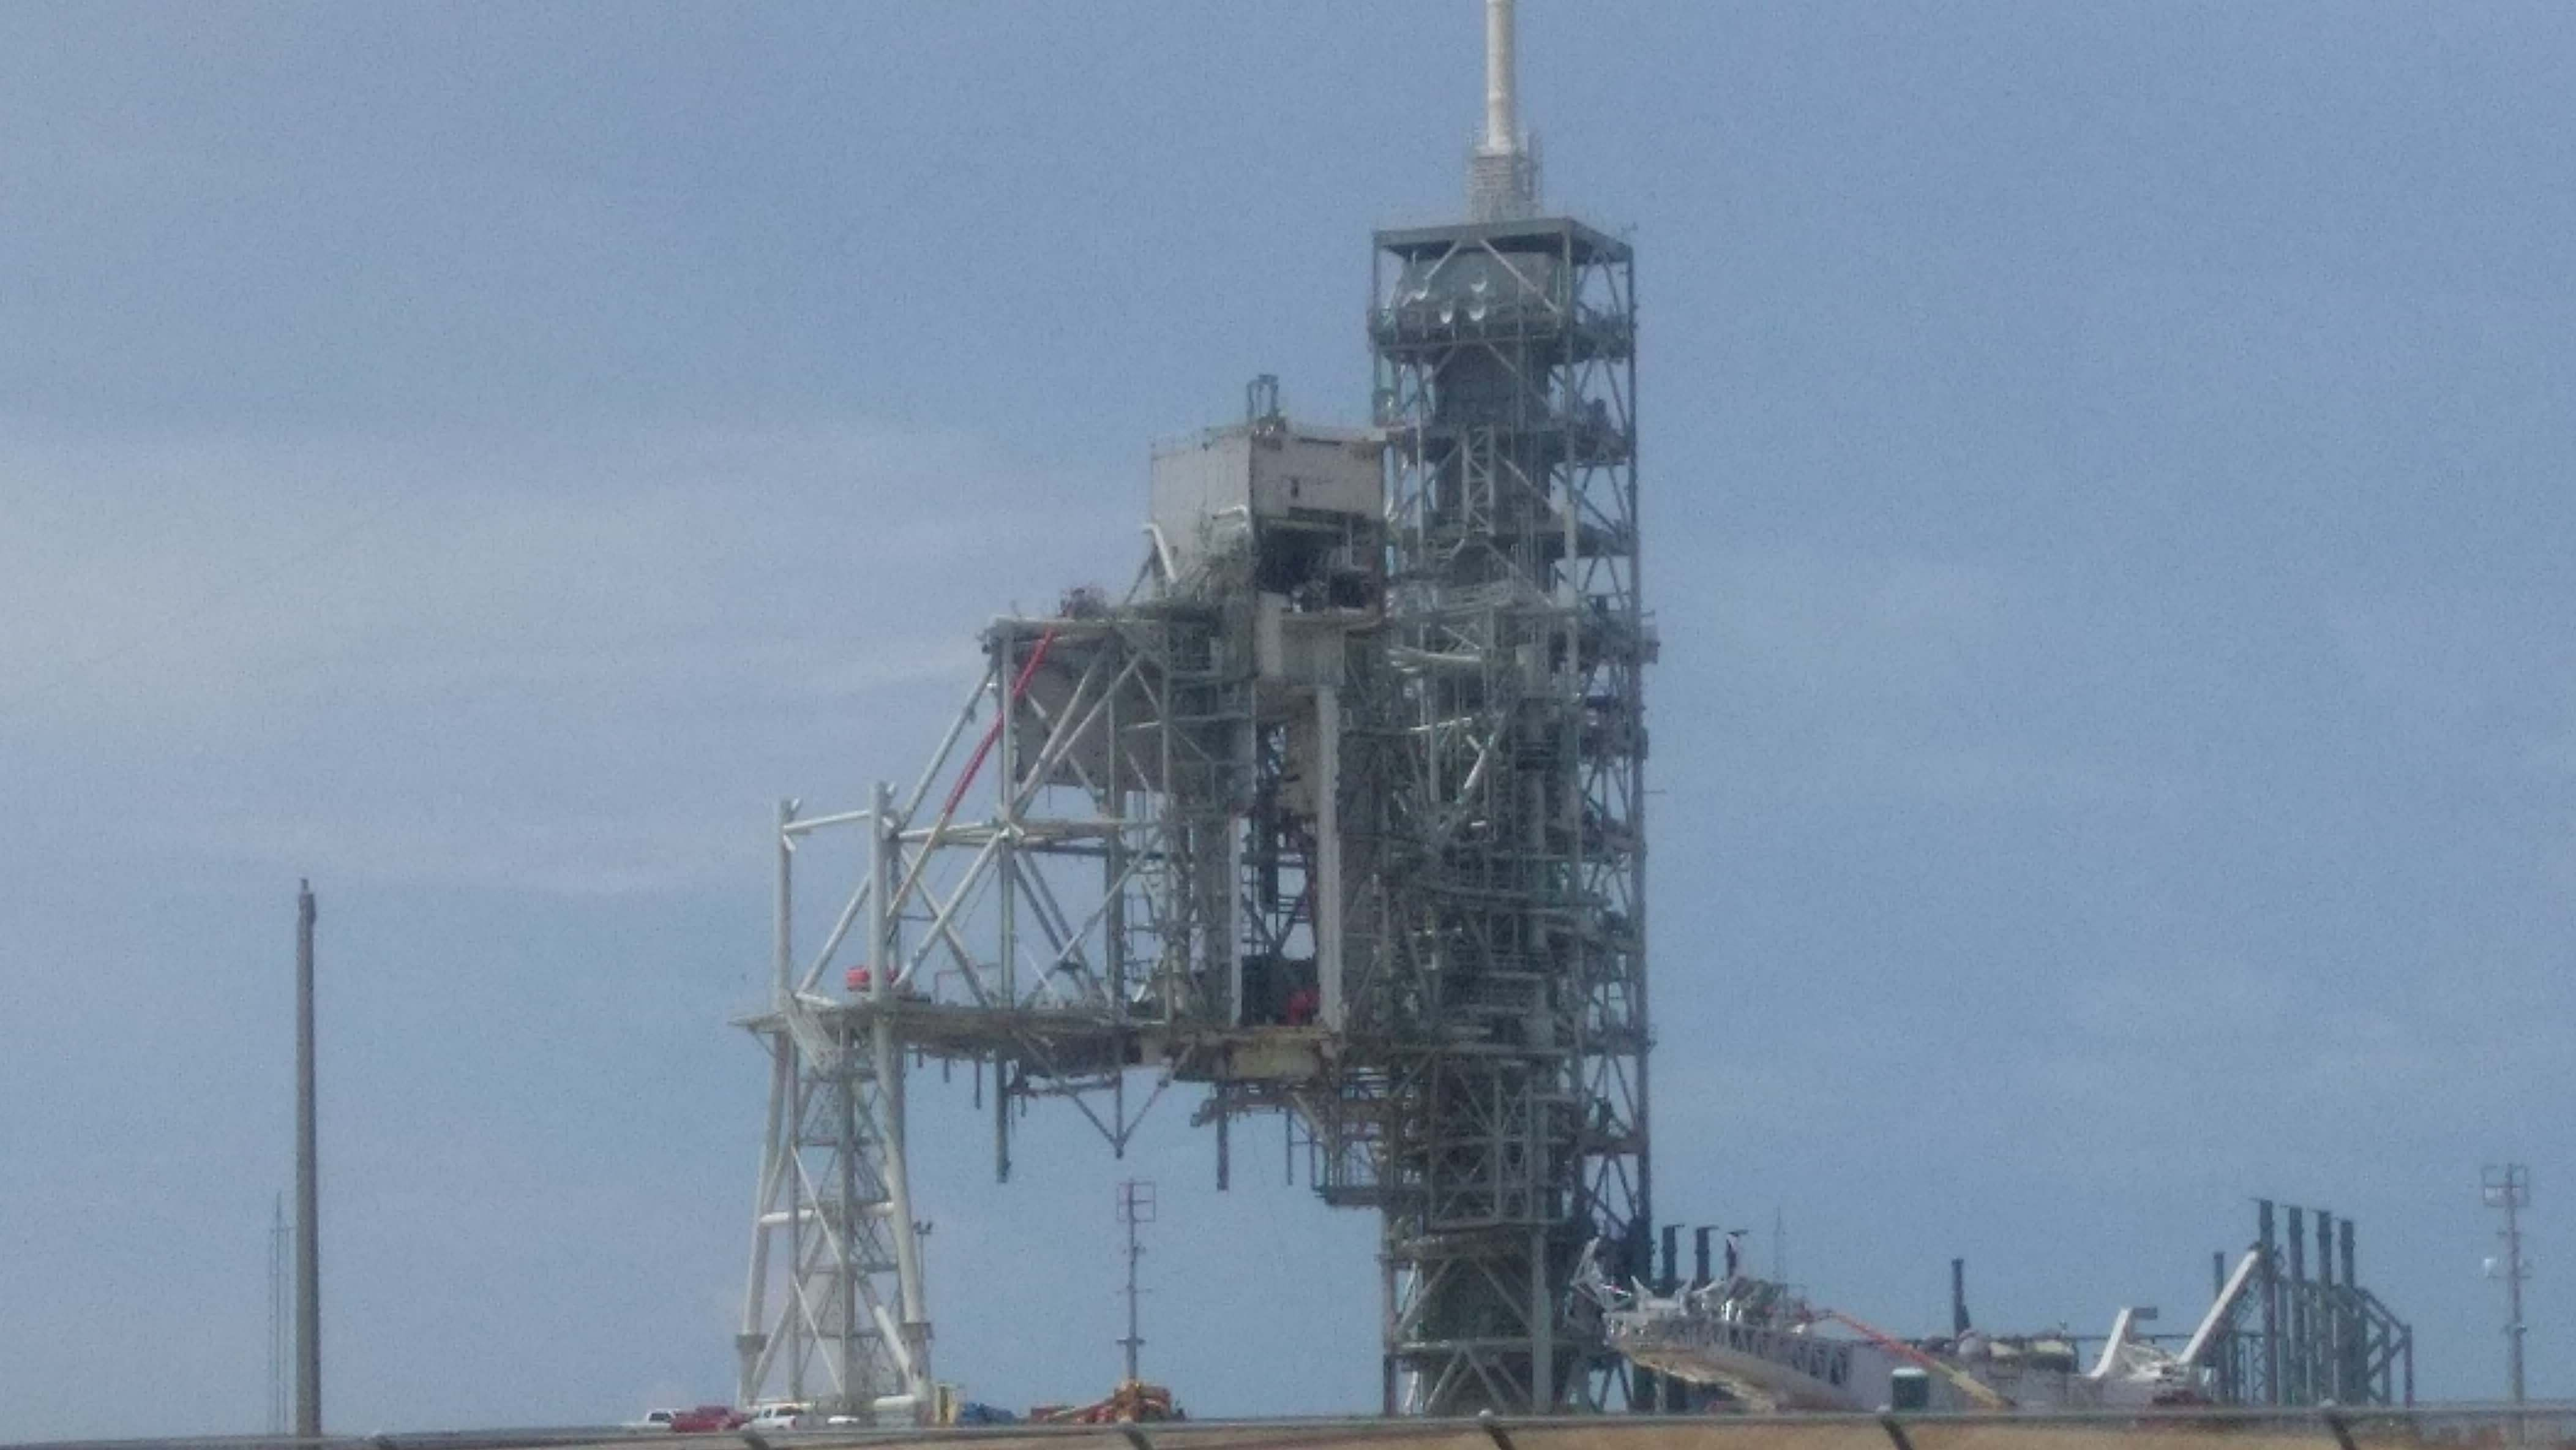 LC-39A